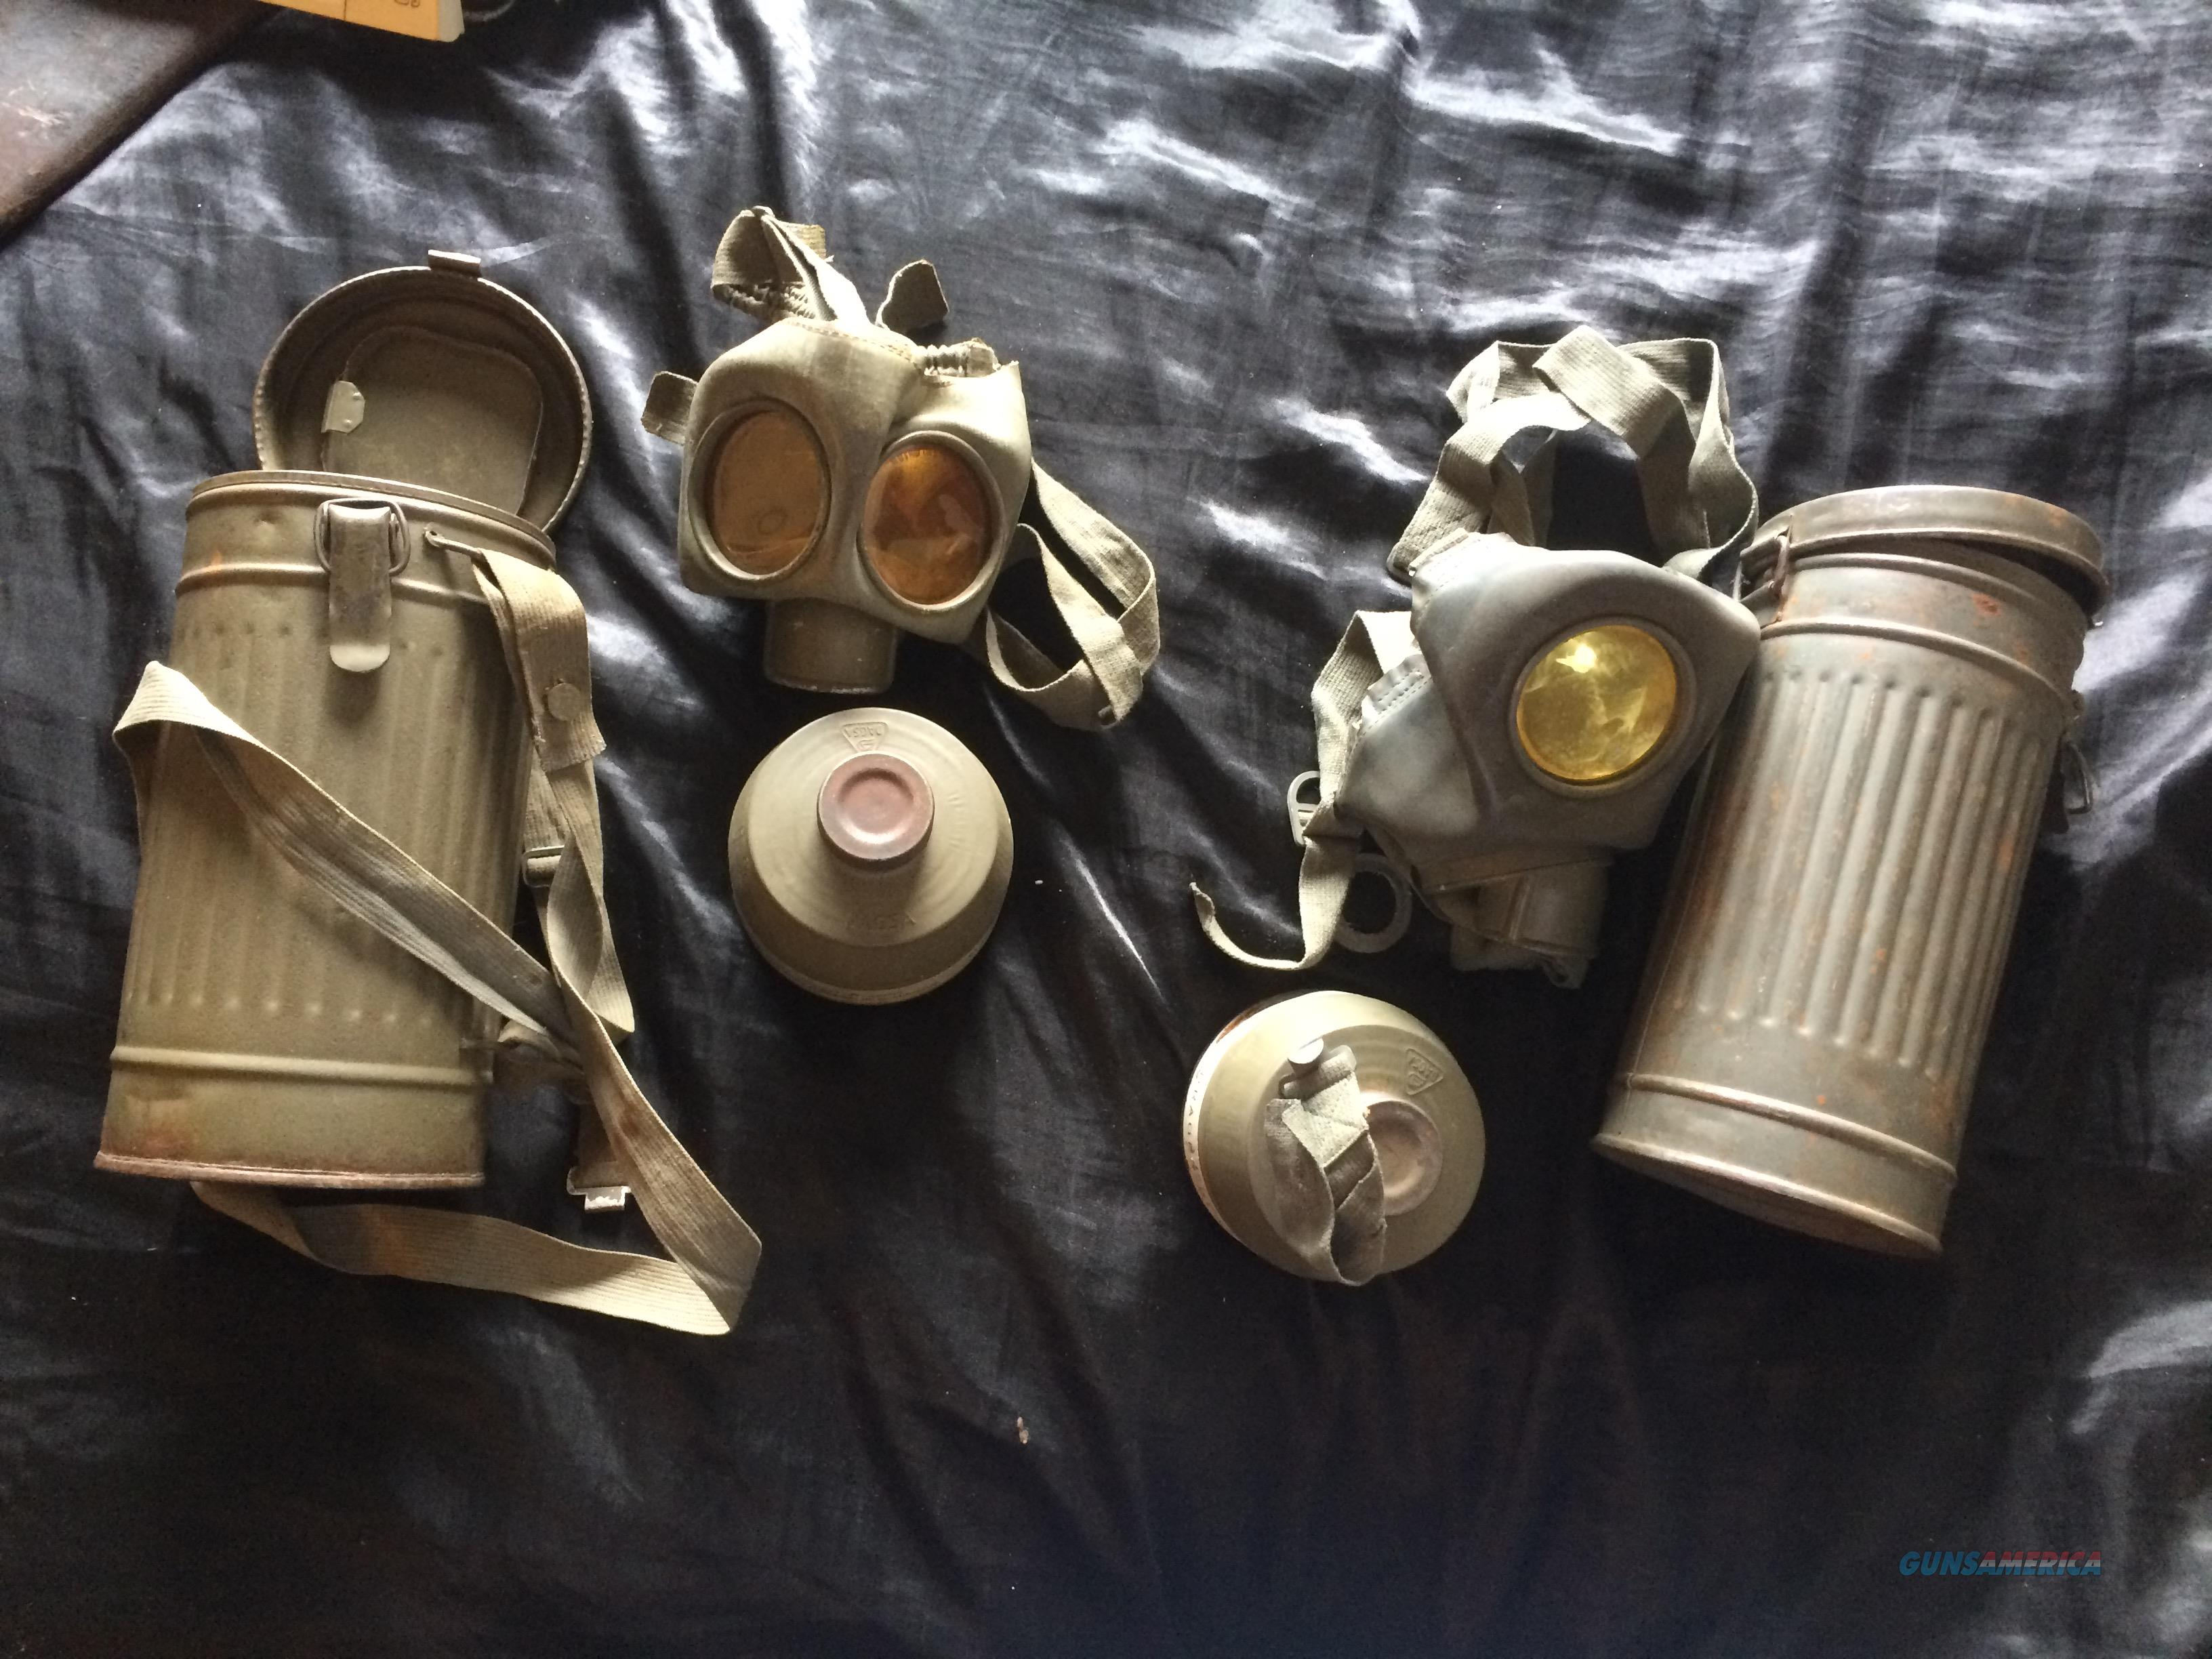 Wm Military Surplus Gas Mask